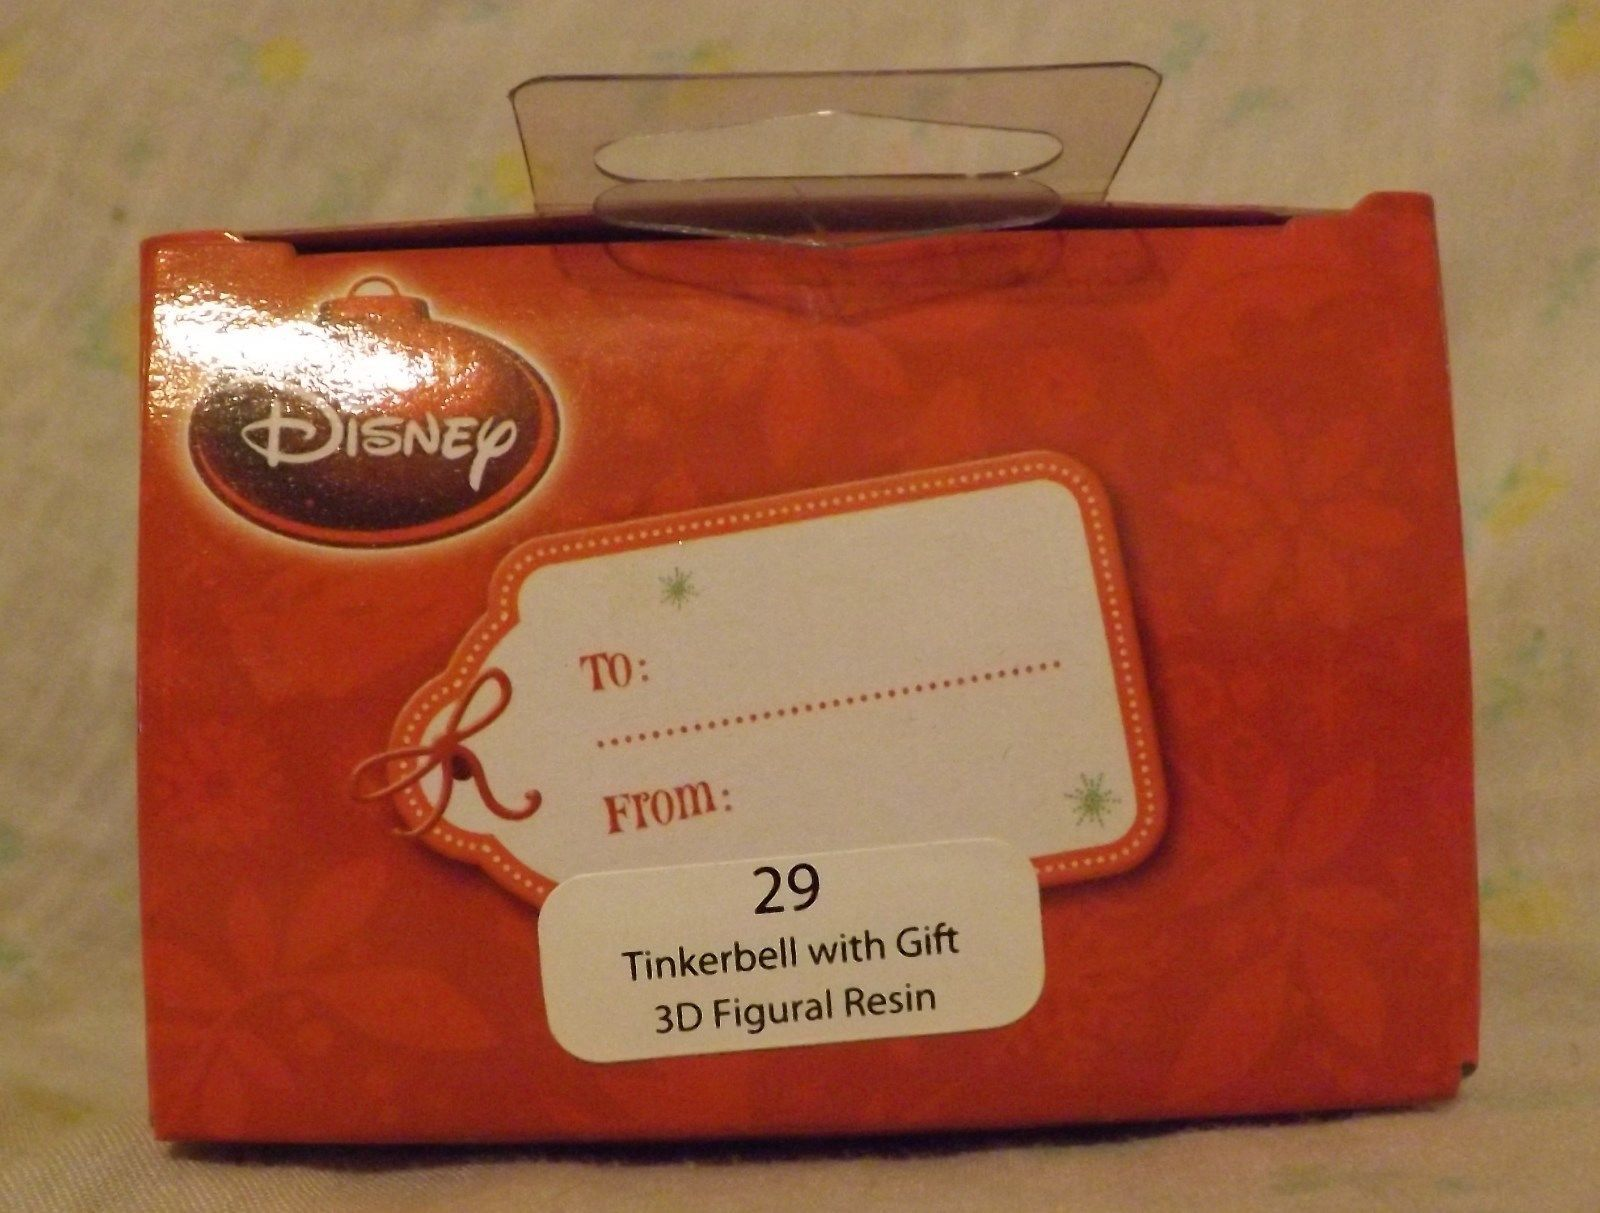 Disney Tinkerbell with Gift 3D Resin Figural Ornament 2013 image 2